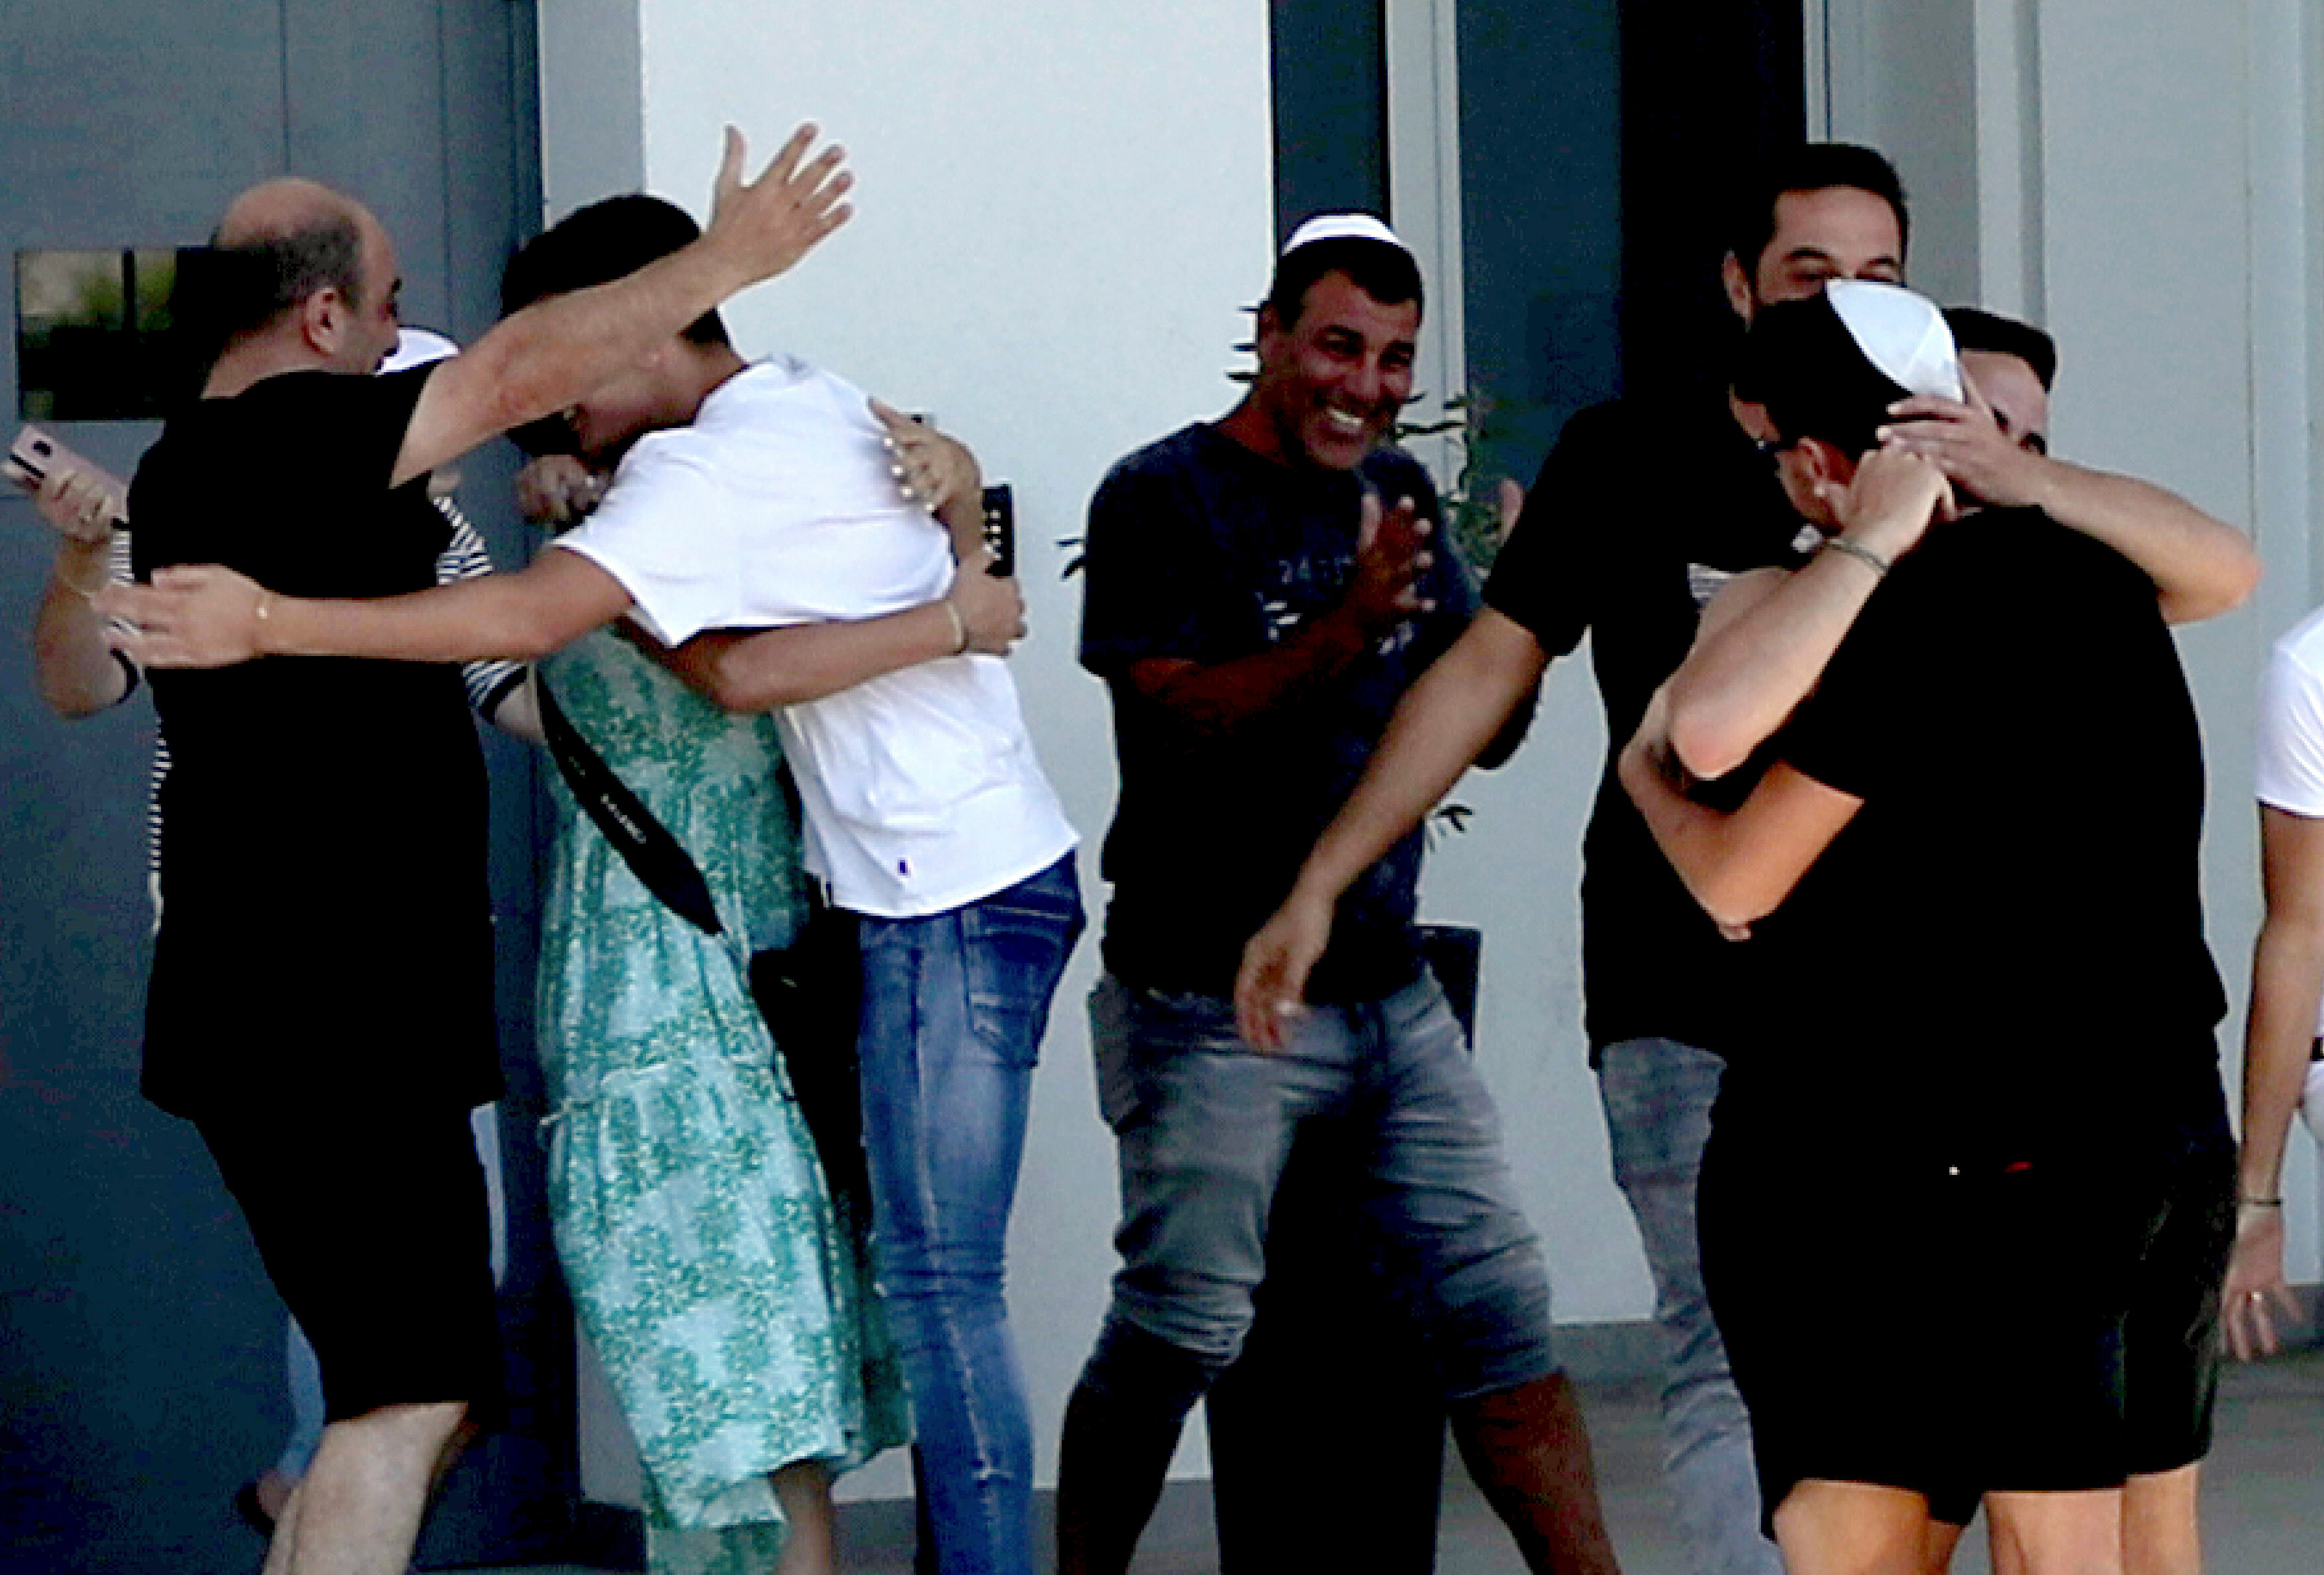 Some of the accused teens celebrated with champagne and chanted 'the Brit is a whore' after the ruling